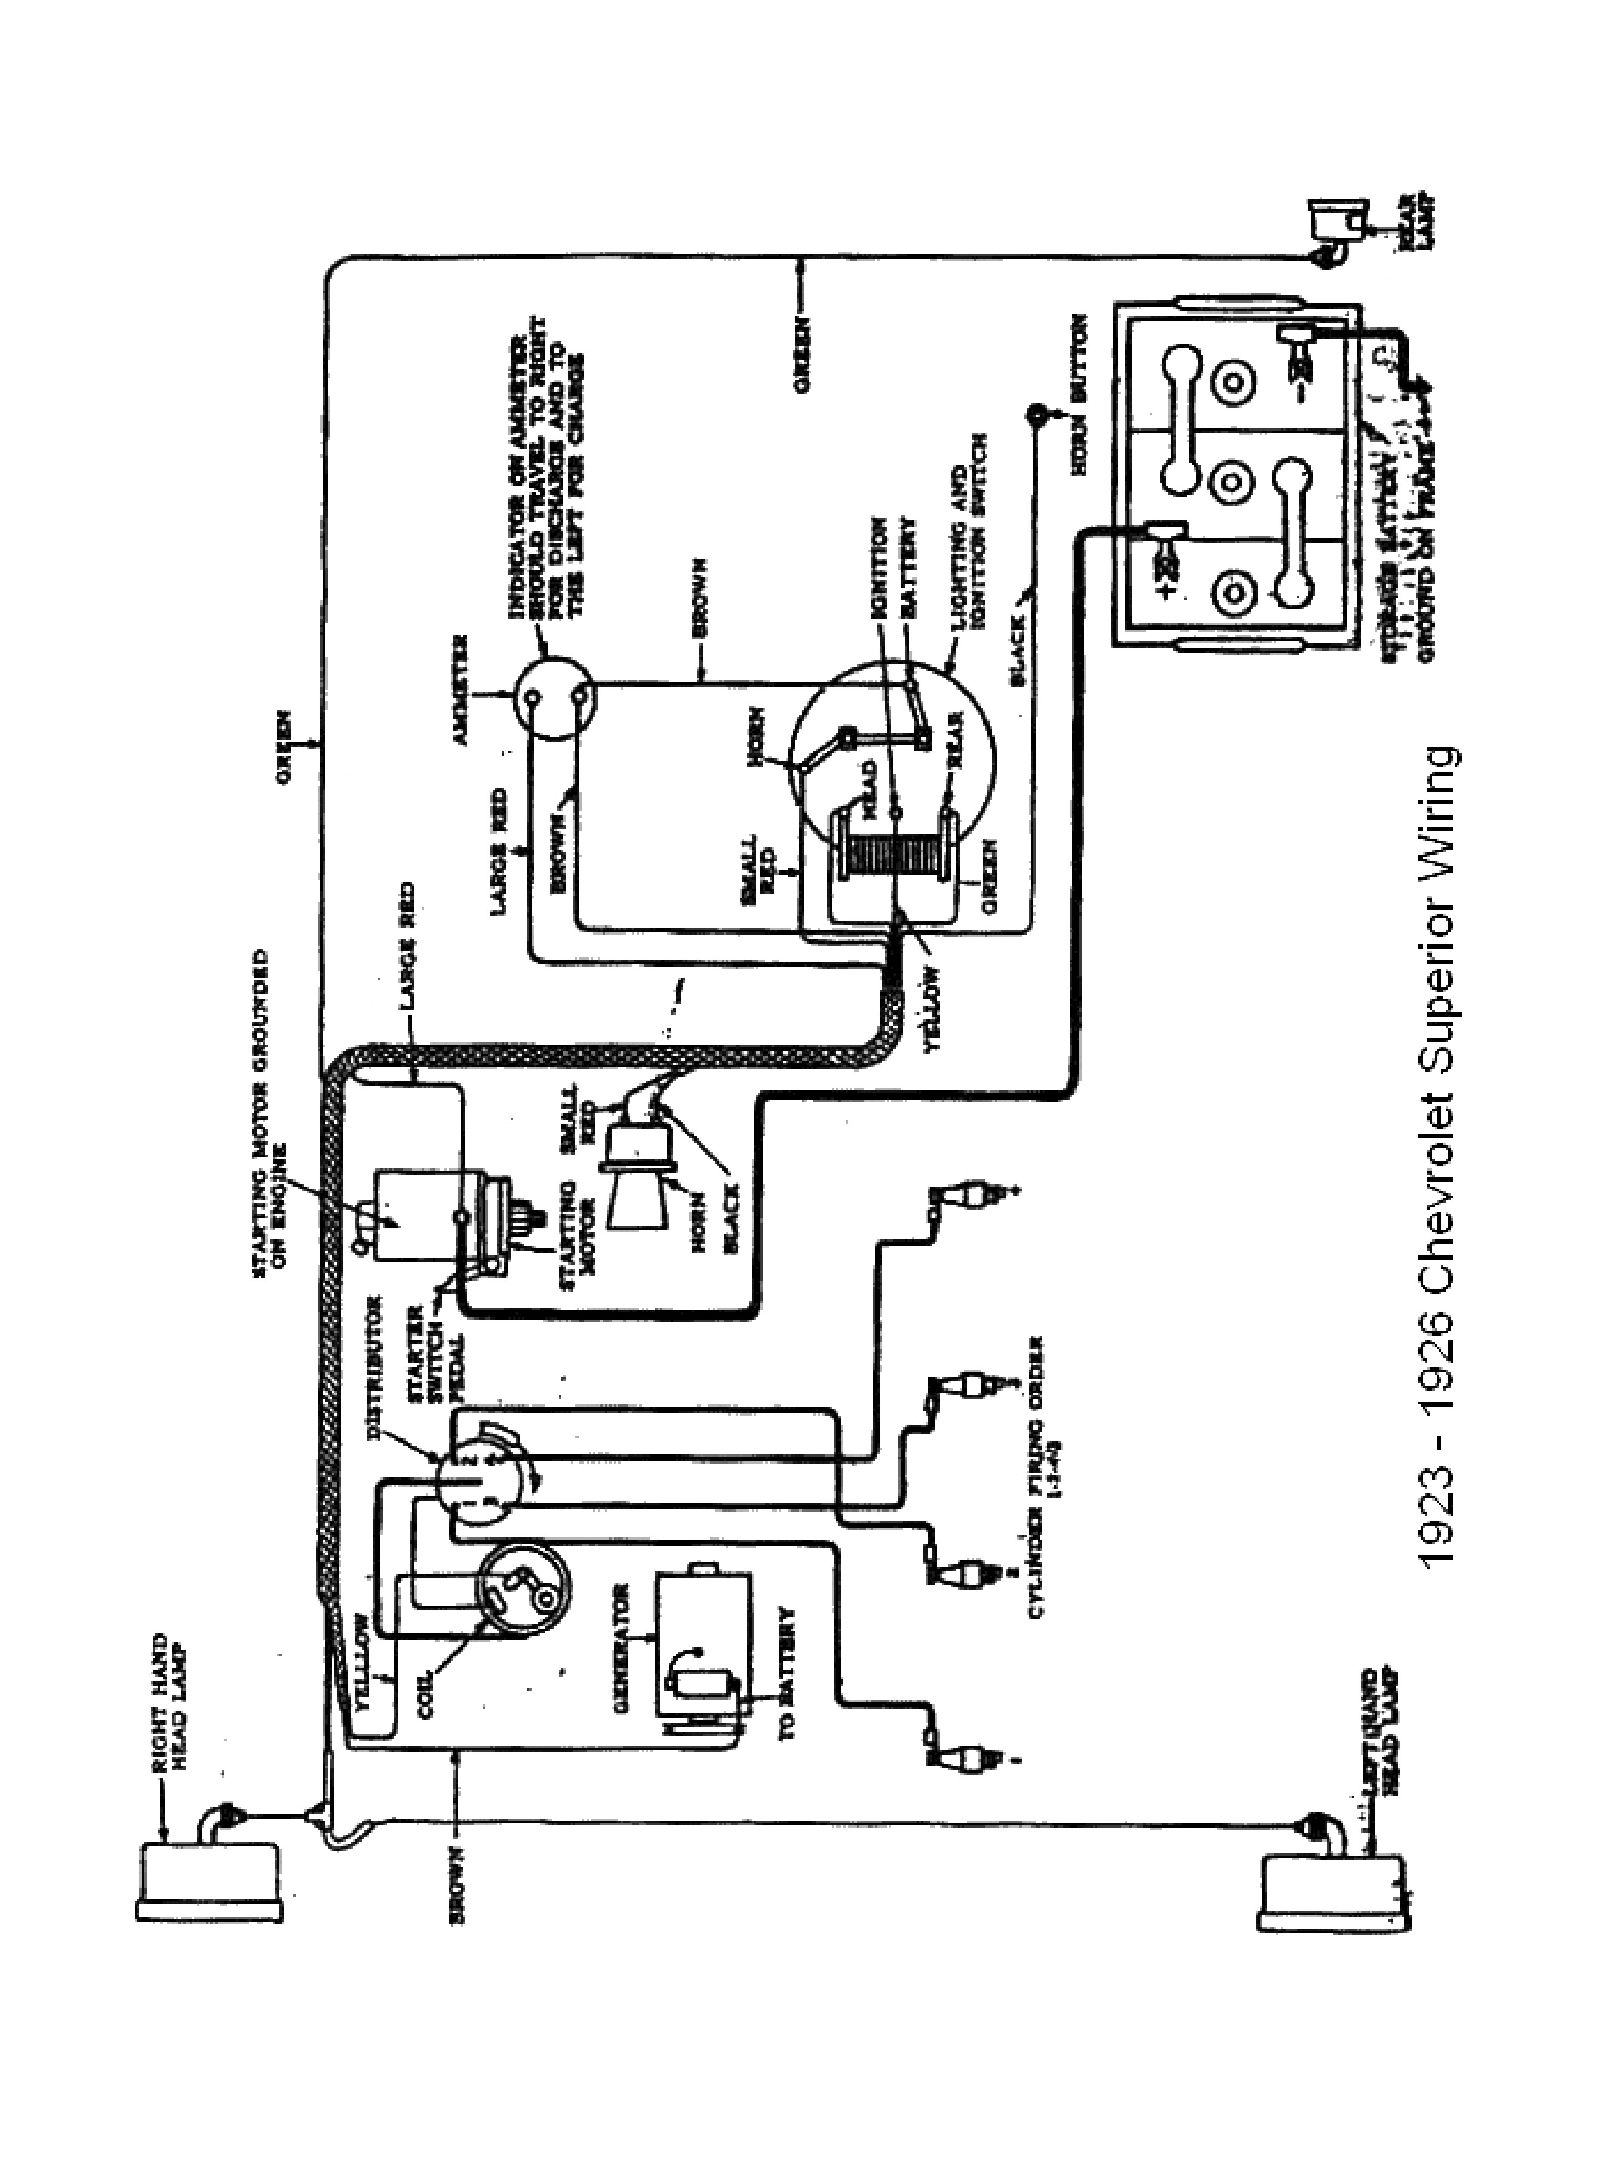 Superior Wiring Diagrams - Trusted Wiring Diagram •